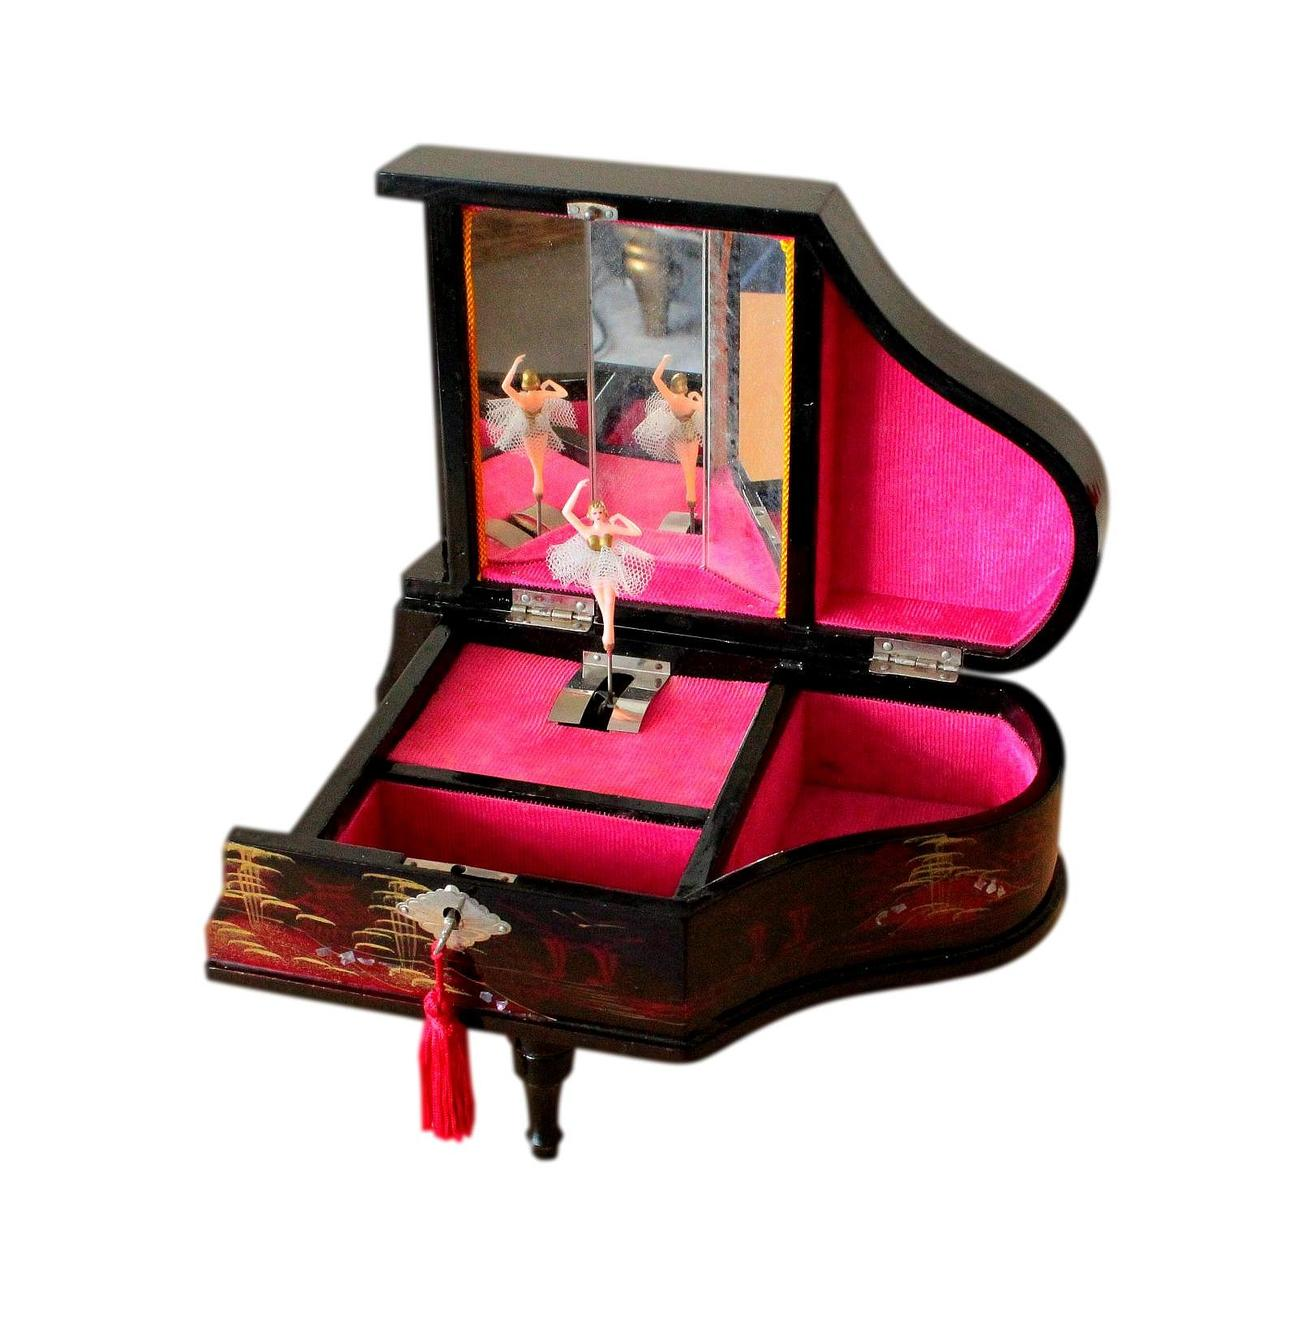 Japanese_Musical_Jewellery_Box_Piano_3.jpg